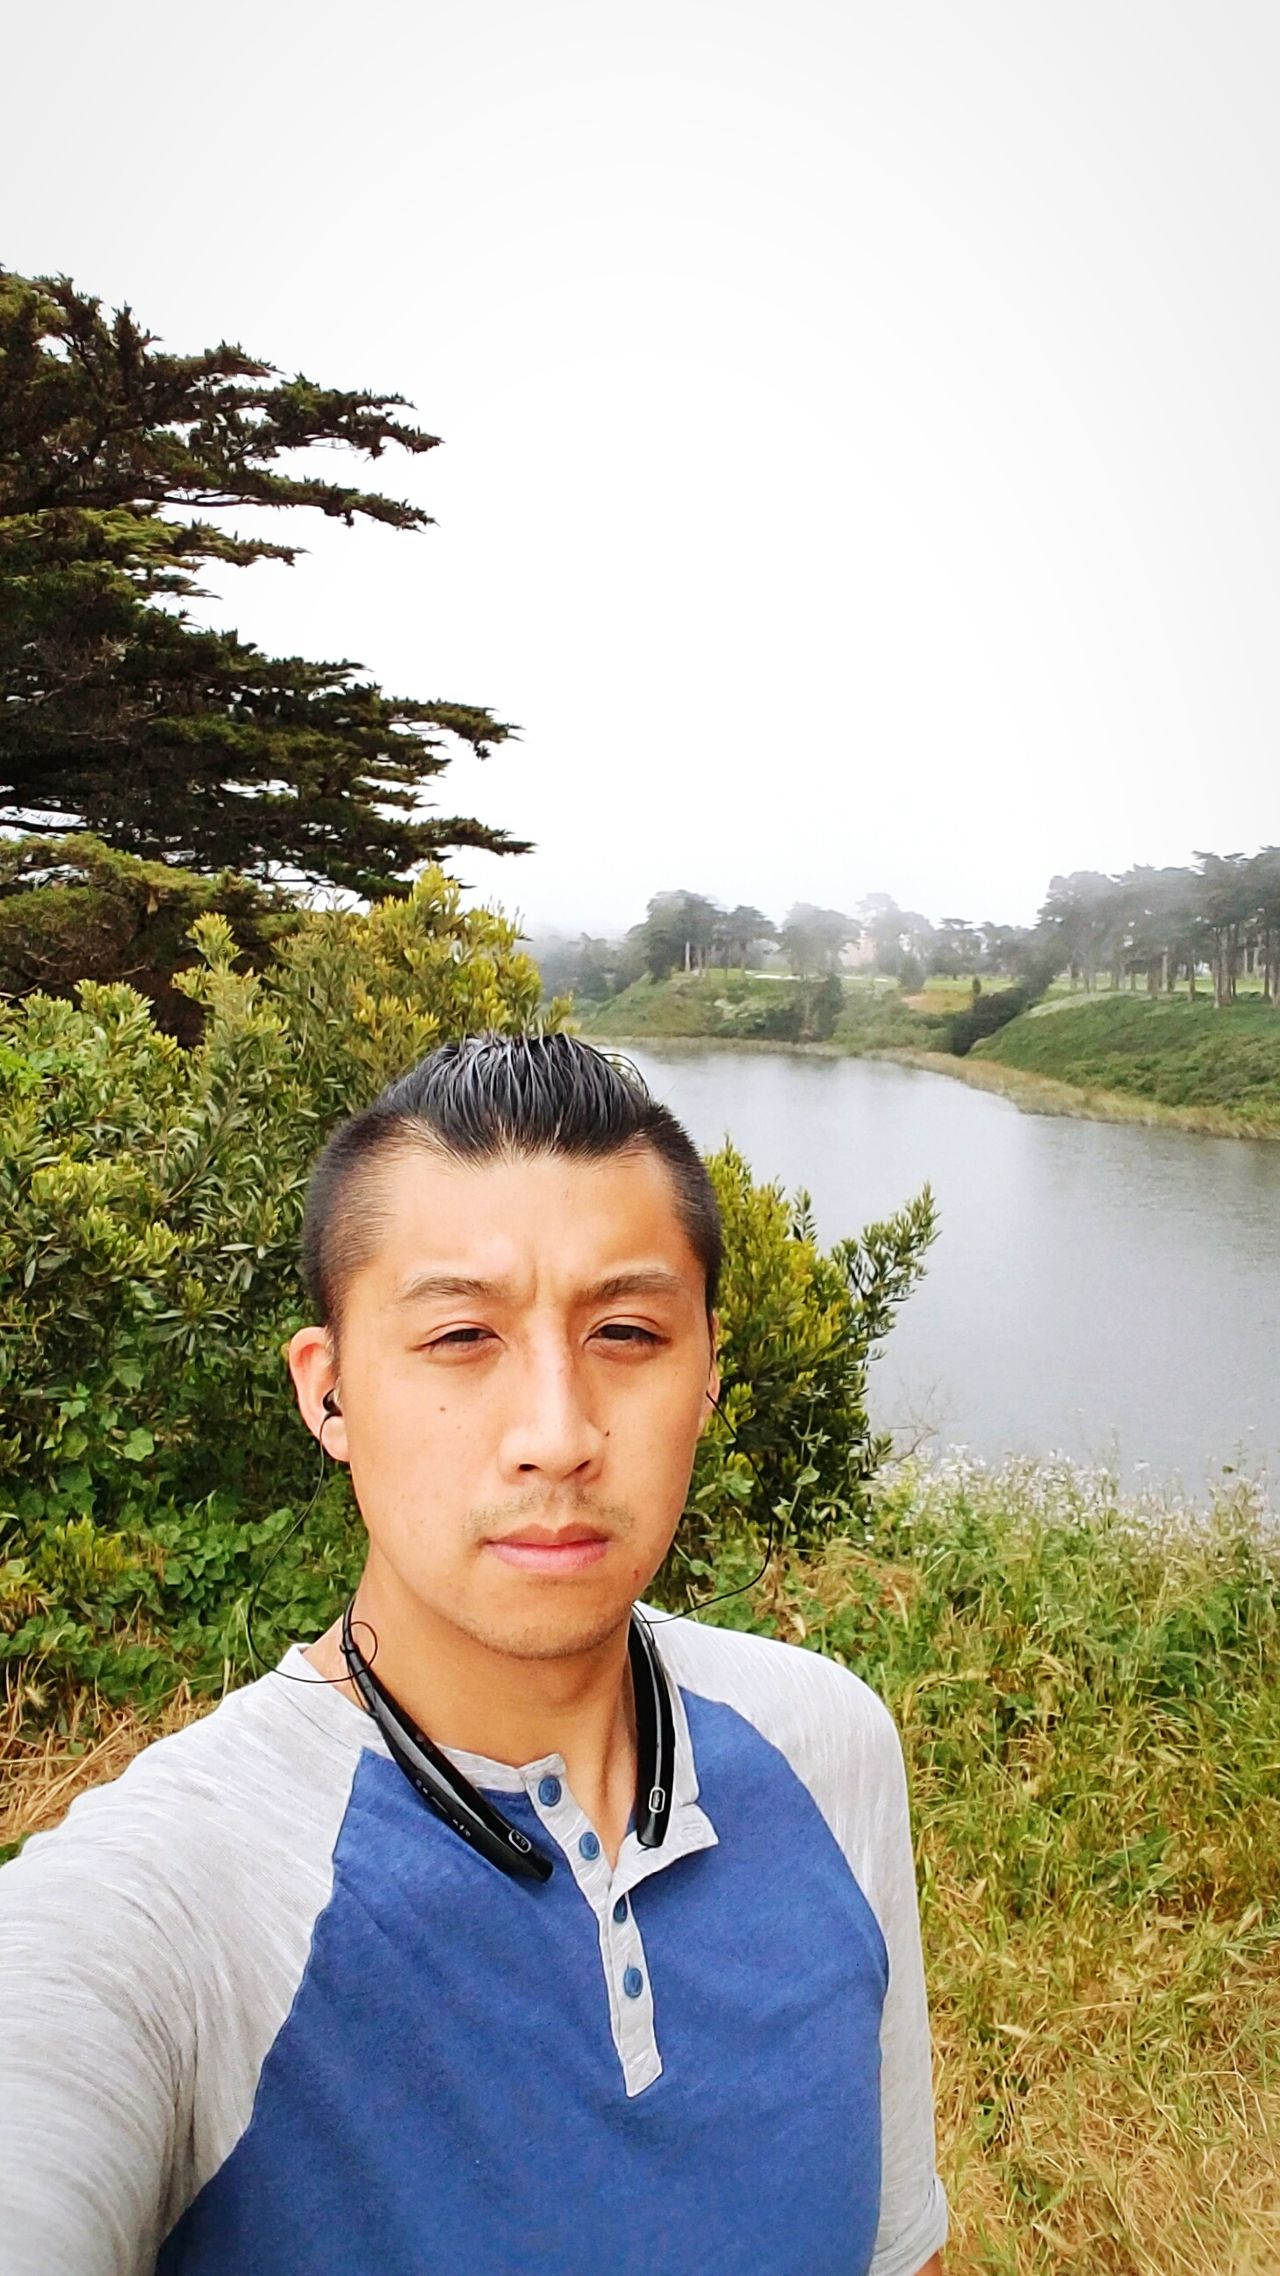 Ehh just a selfie of me, myself, and treesnlake Adult Front View Lake Outdoors Portrait Day Sky Nature Water Greenery Beauty In Nature Skyline Love Scenery Shots The Great Outdoors - 2017 EyeEm Awards Agriculture Green Color Growth Nature Tree Menhairstyle Lips Amateurmodelling Asian  Selfıe